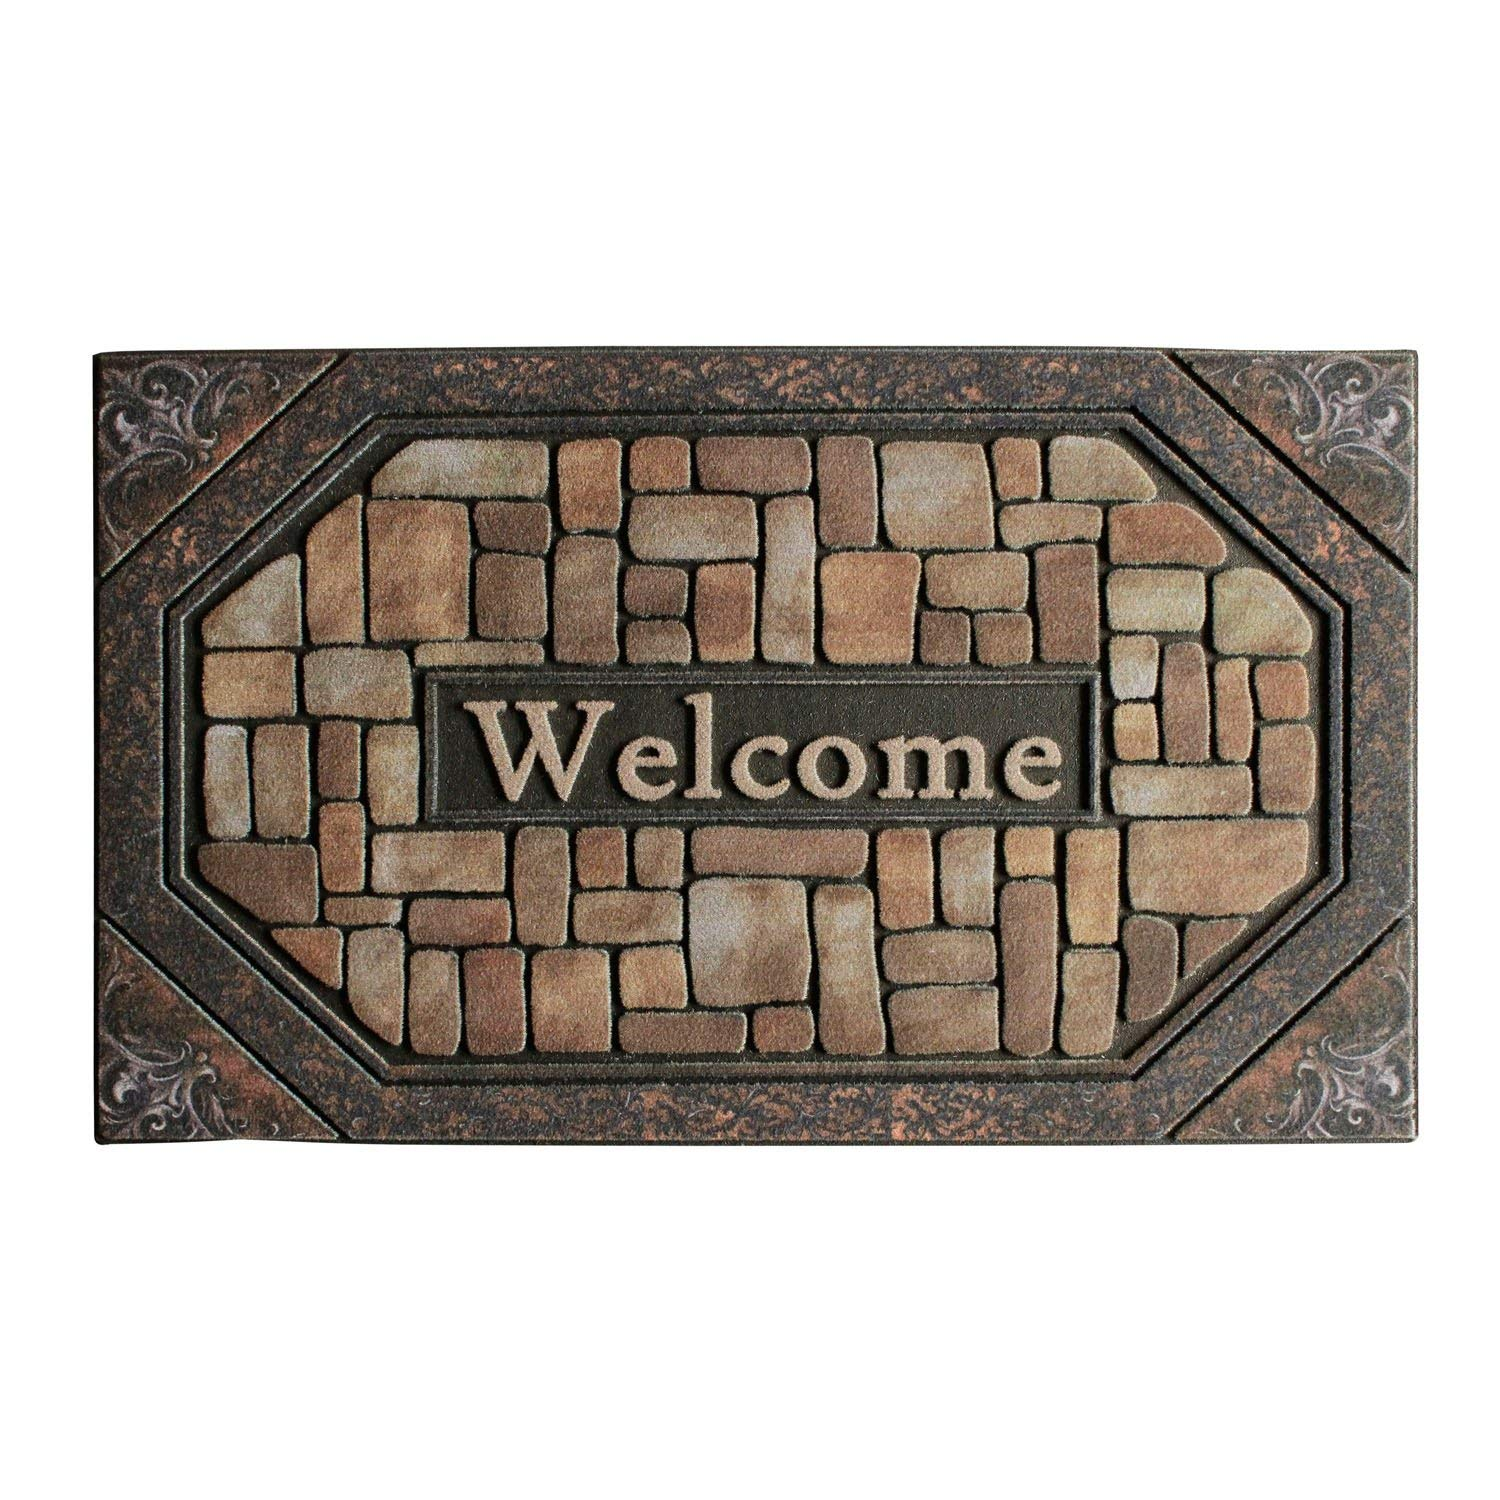 Front Door Mat Entrance Rug Floor Mats Waterproof Floor Mat Shoes Scraper Doormat 18u0027u0027x30u0027u0027 Patio Rug Dirt Debris Mud Trapper Outdoor Welcome Door Mat ...  sc 1 st  Alibaba & Buy Front Door Mat Entrance Rug Floor Mats Waterproof Floor Mat ...